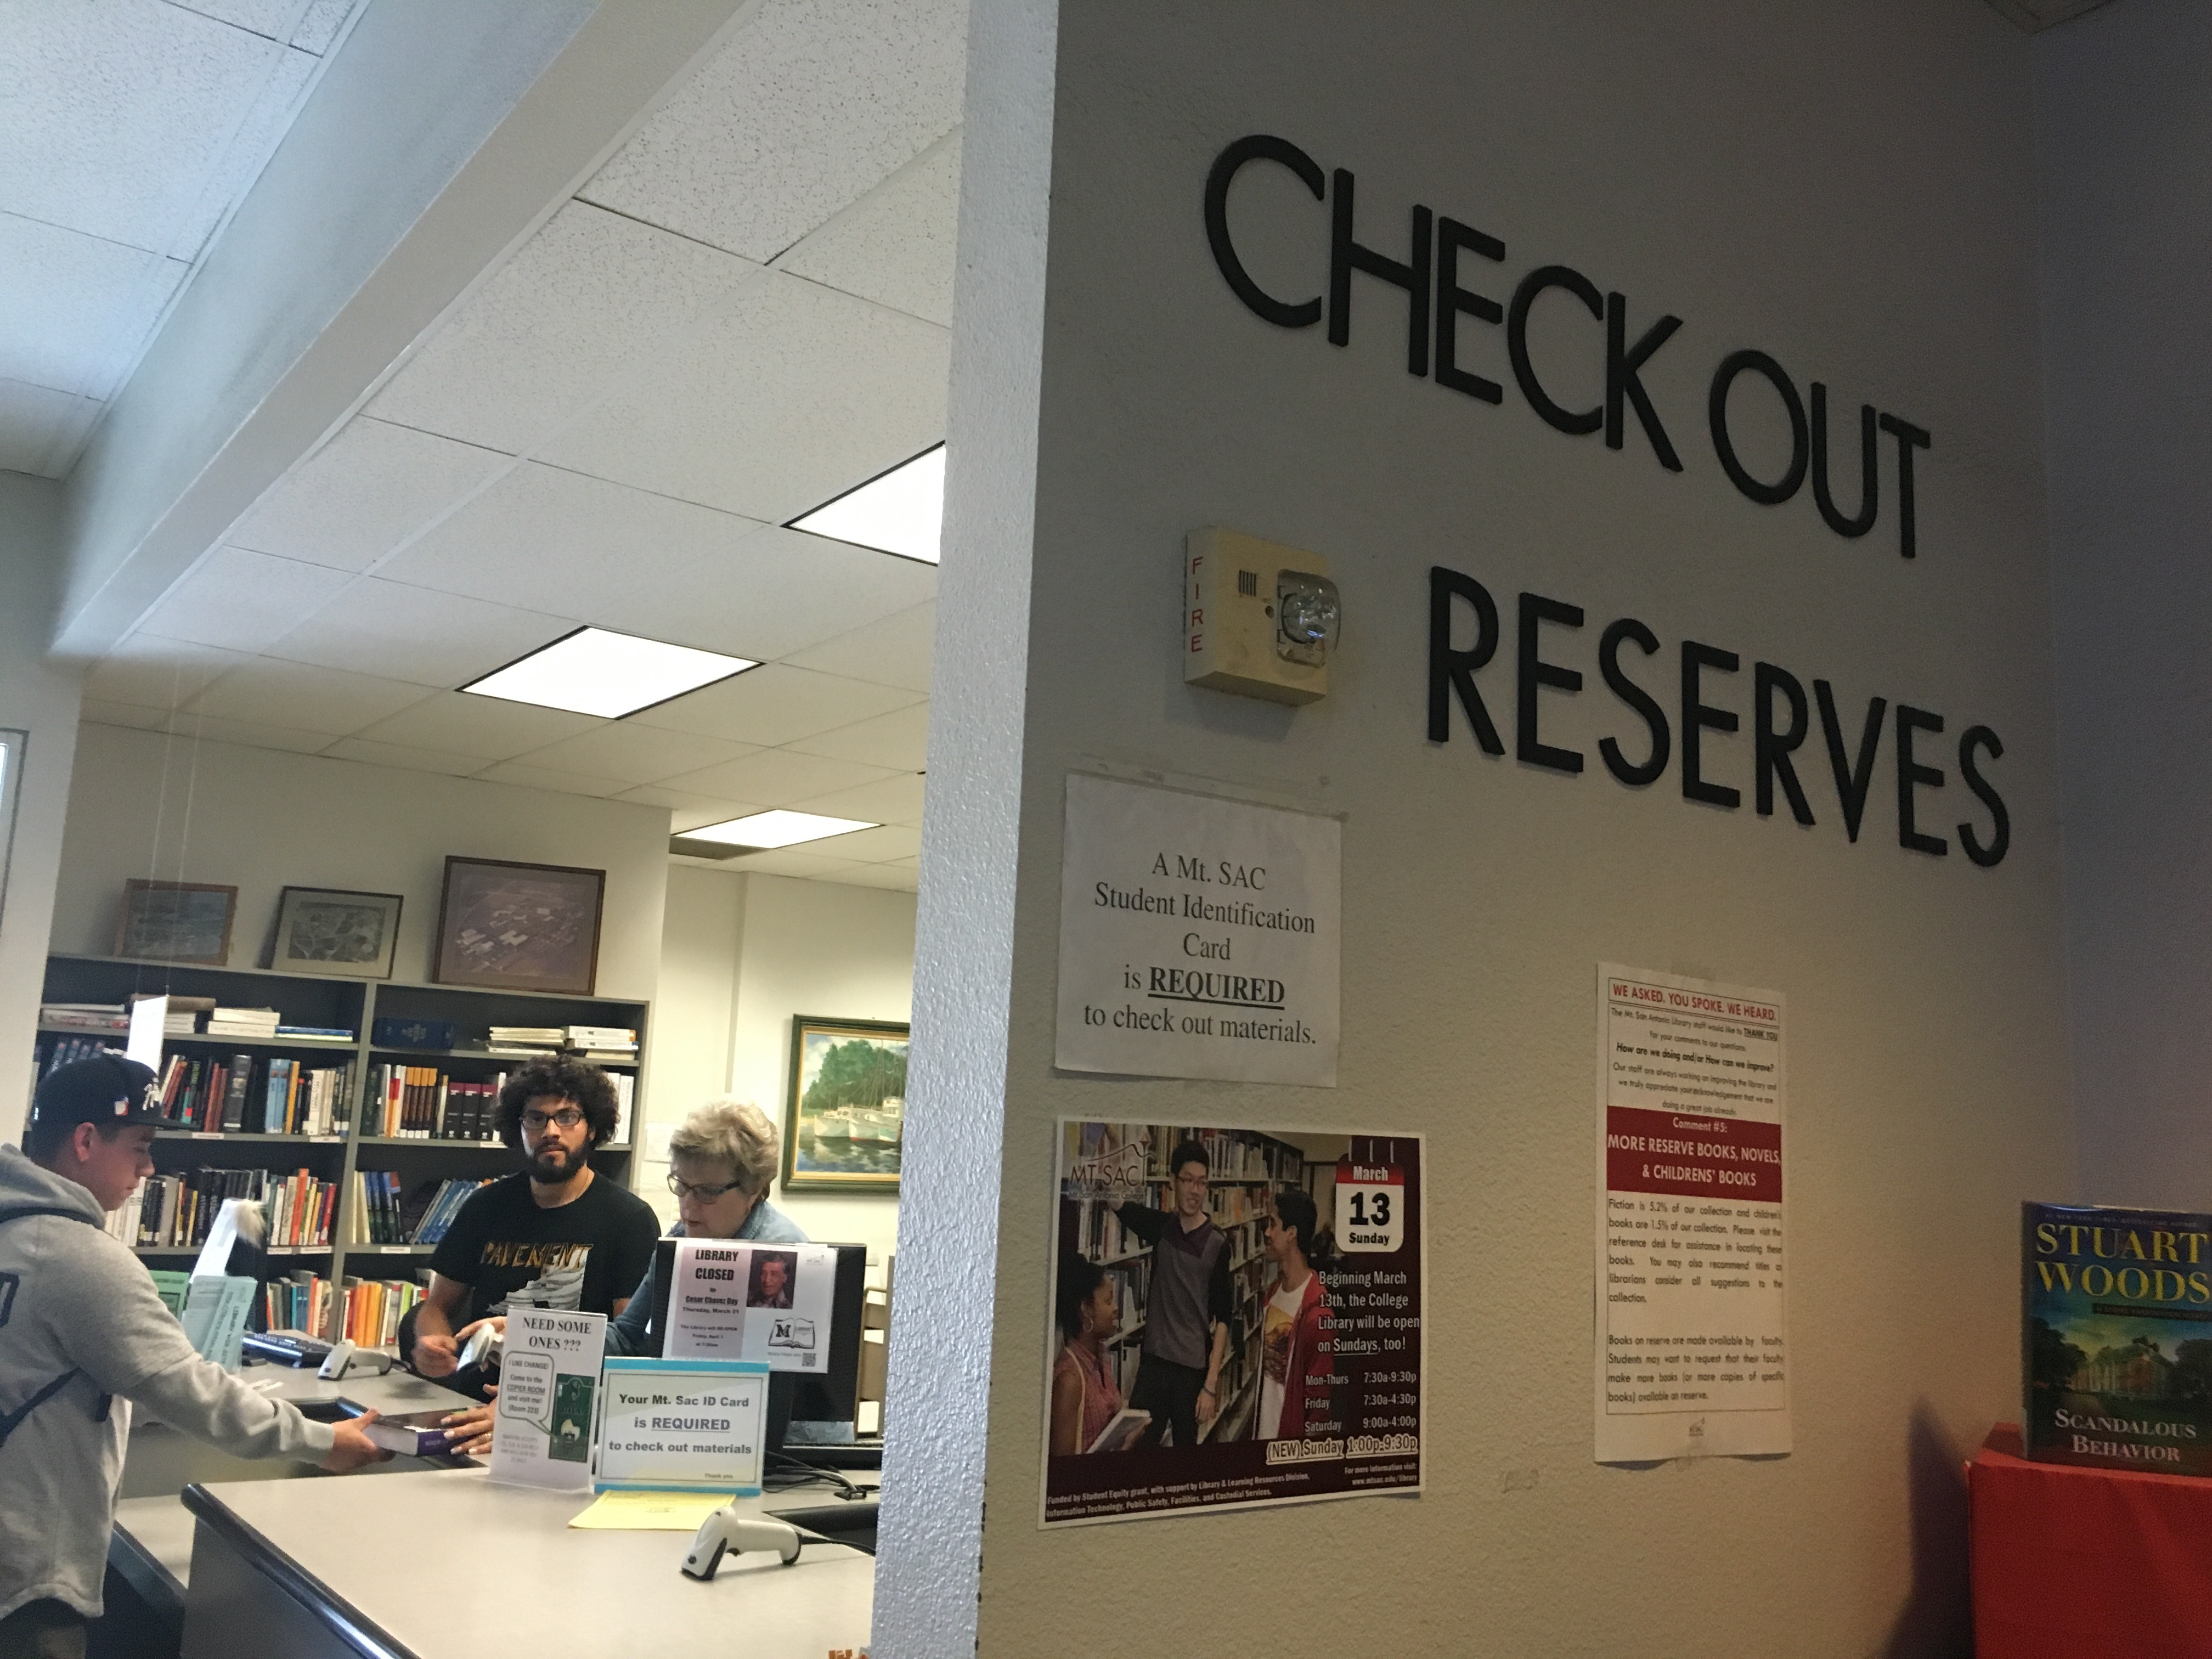 Picture of the Check Out/Reserves Desk